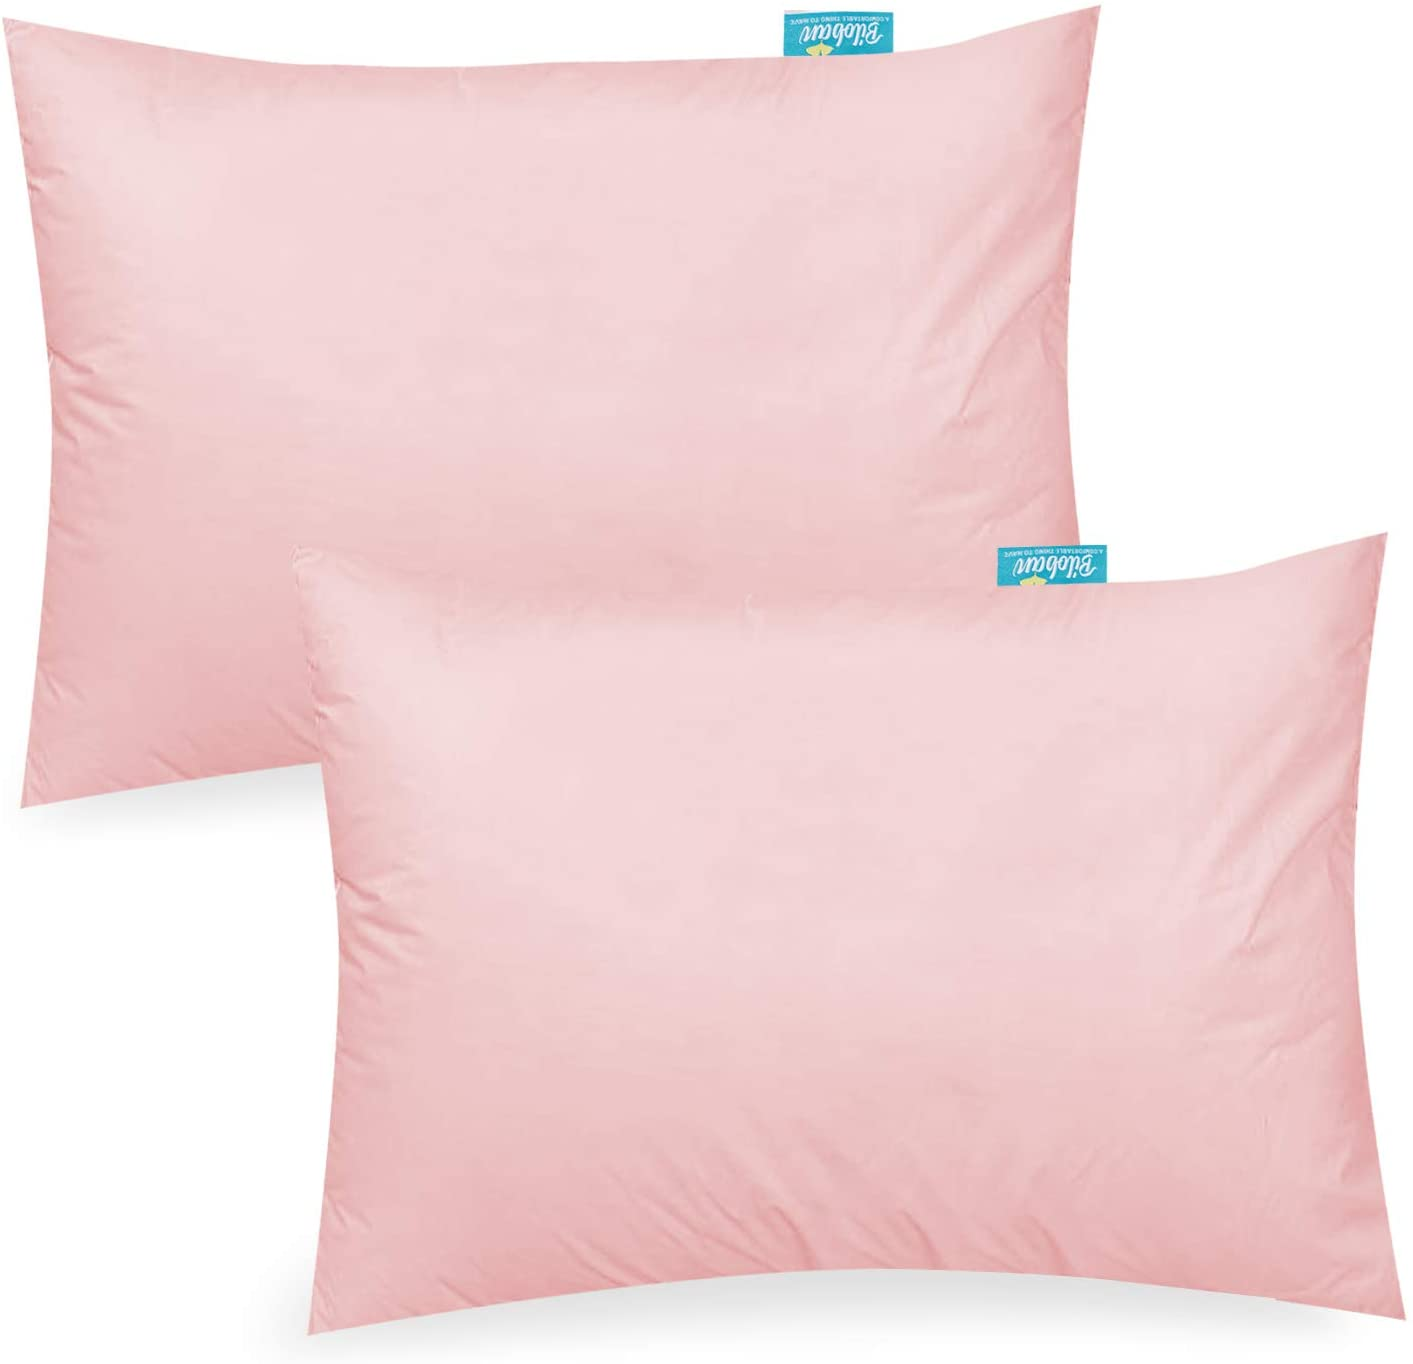 biloban travel toddler pillowcase 2 pack for girls 100 cotton pillowcase for sleeping fit small pillow for 12 x 16 13 x 18 14 x 19 pink